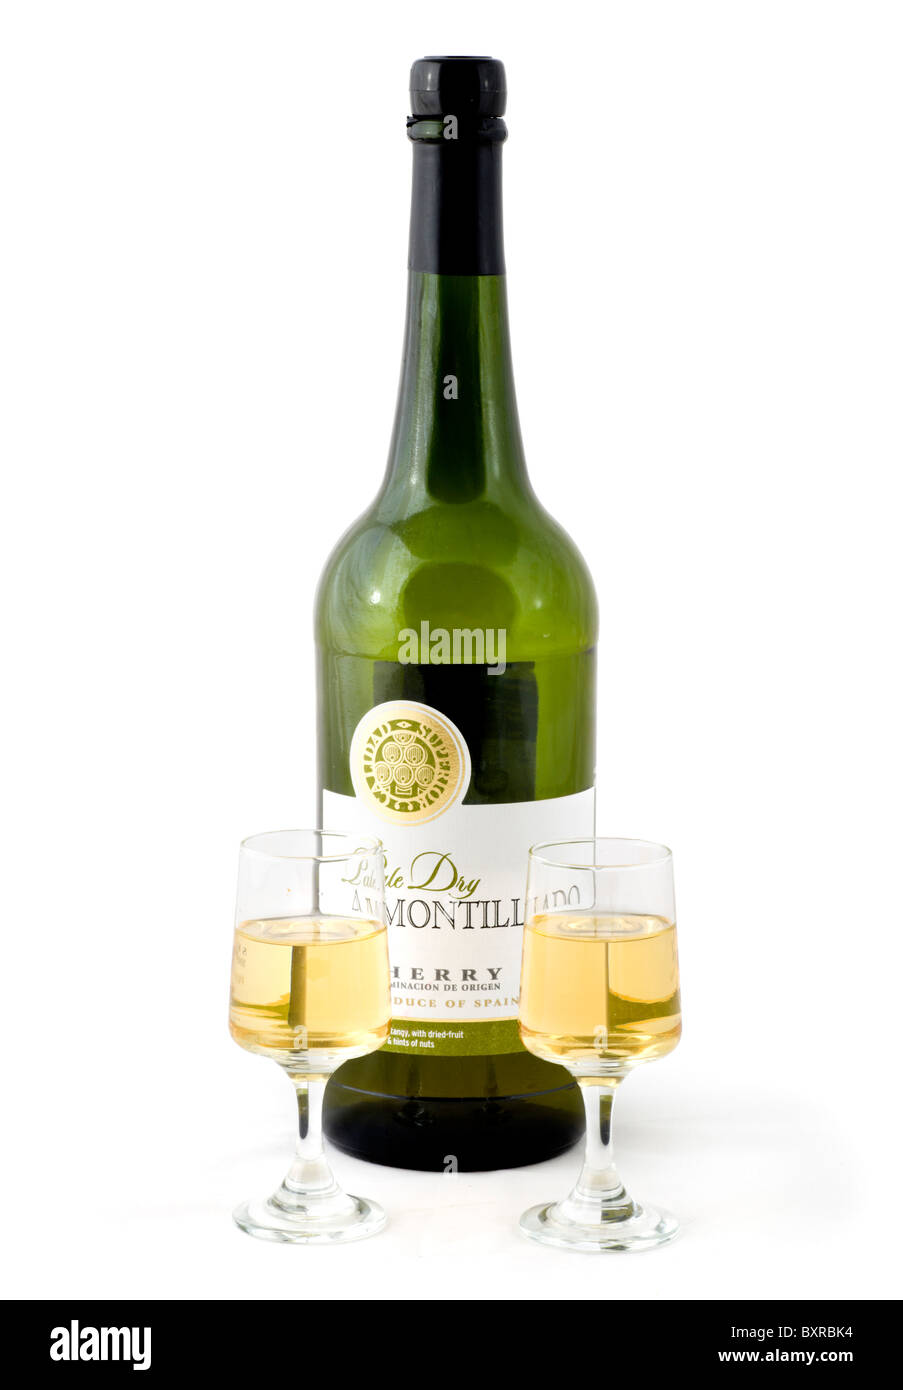 Bottle of Pale Dry Amontillado Sherry and two glasses, UK - Stock Image